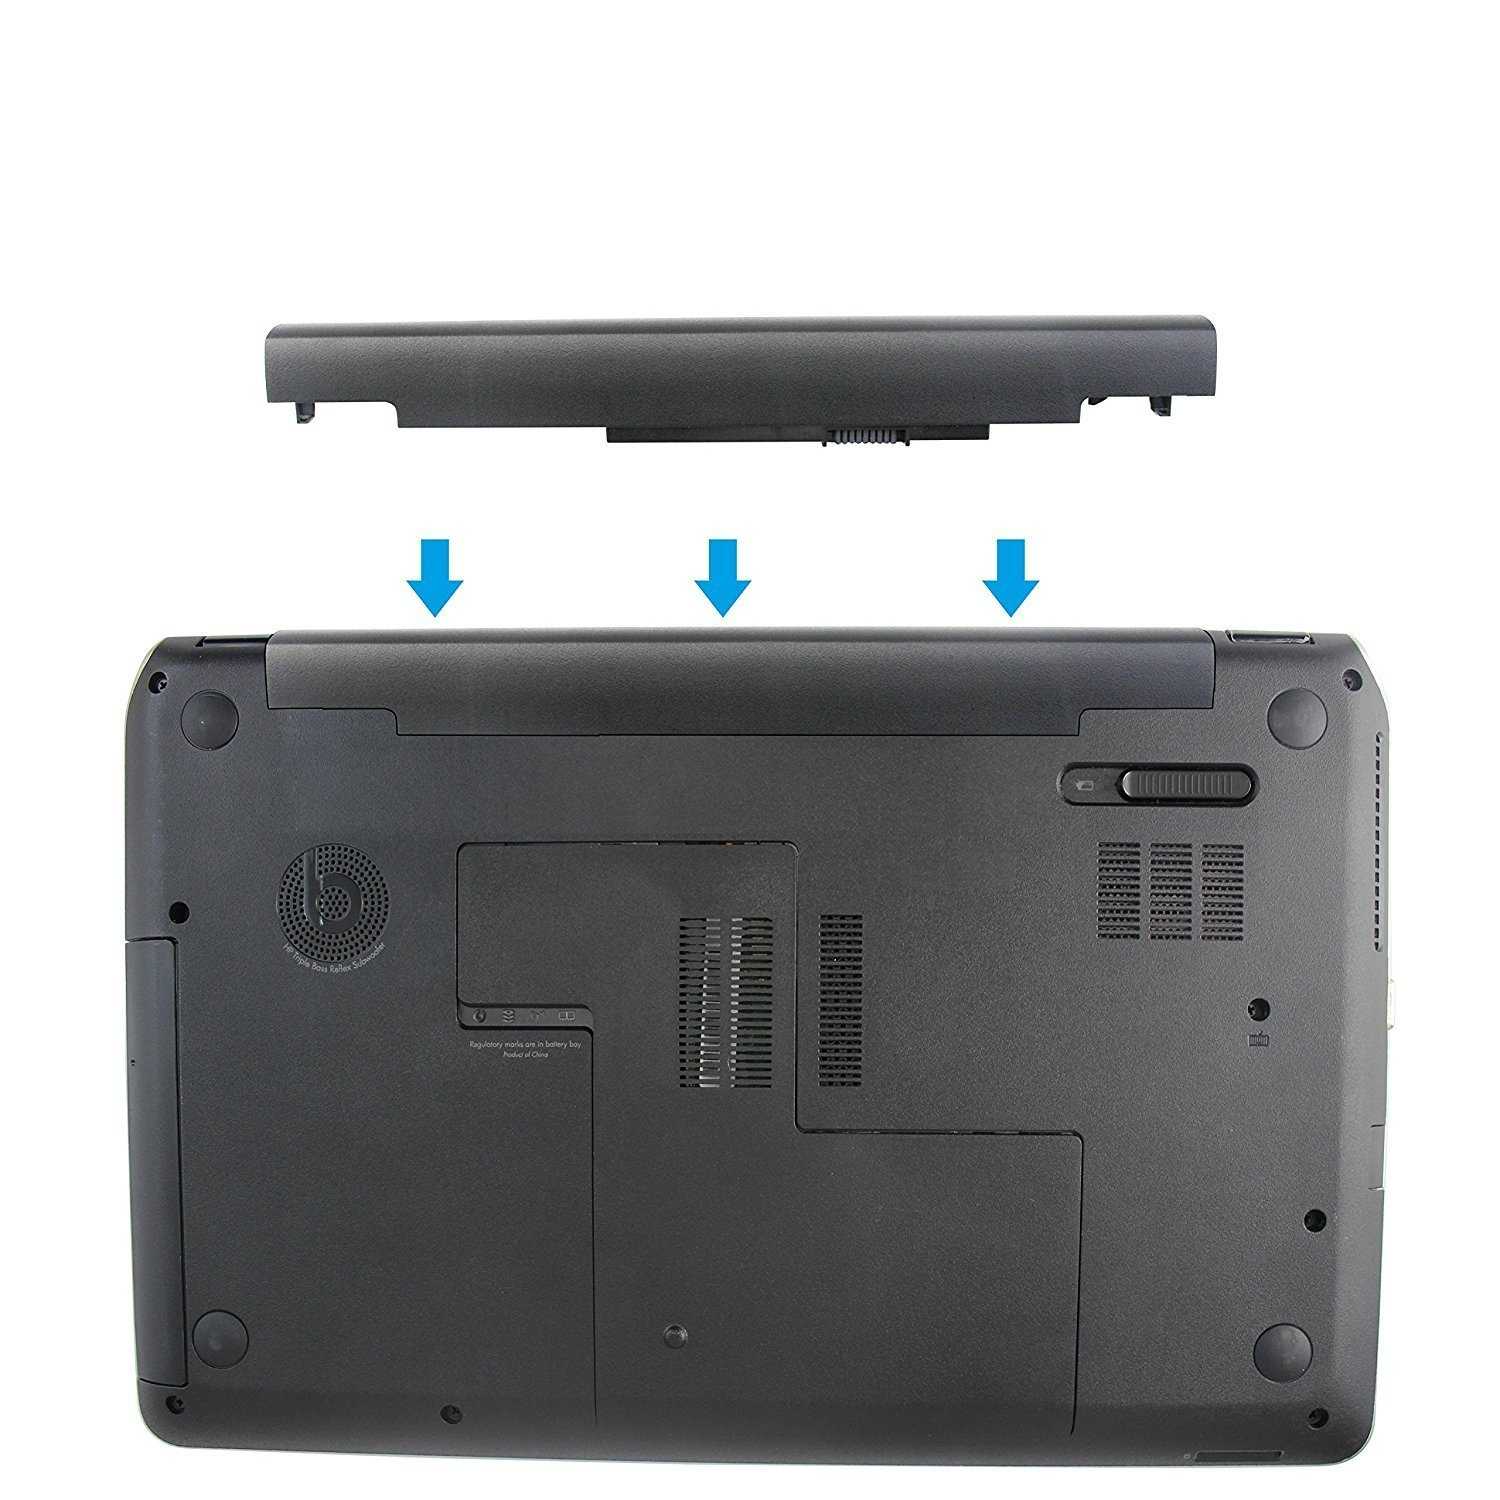 Amazon.com: Fully New Replacement HS04 HS03 Laptop Battery Compatible with HP 245 g4 255 g4 HSTNN-LB6U HSTNN-LB6V 807957-001 807956-001 807612-421 - 14.8V ...